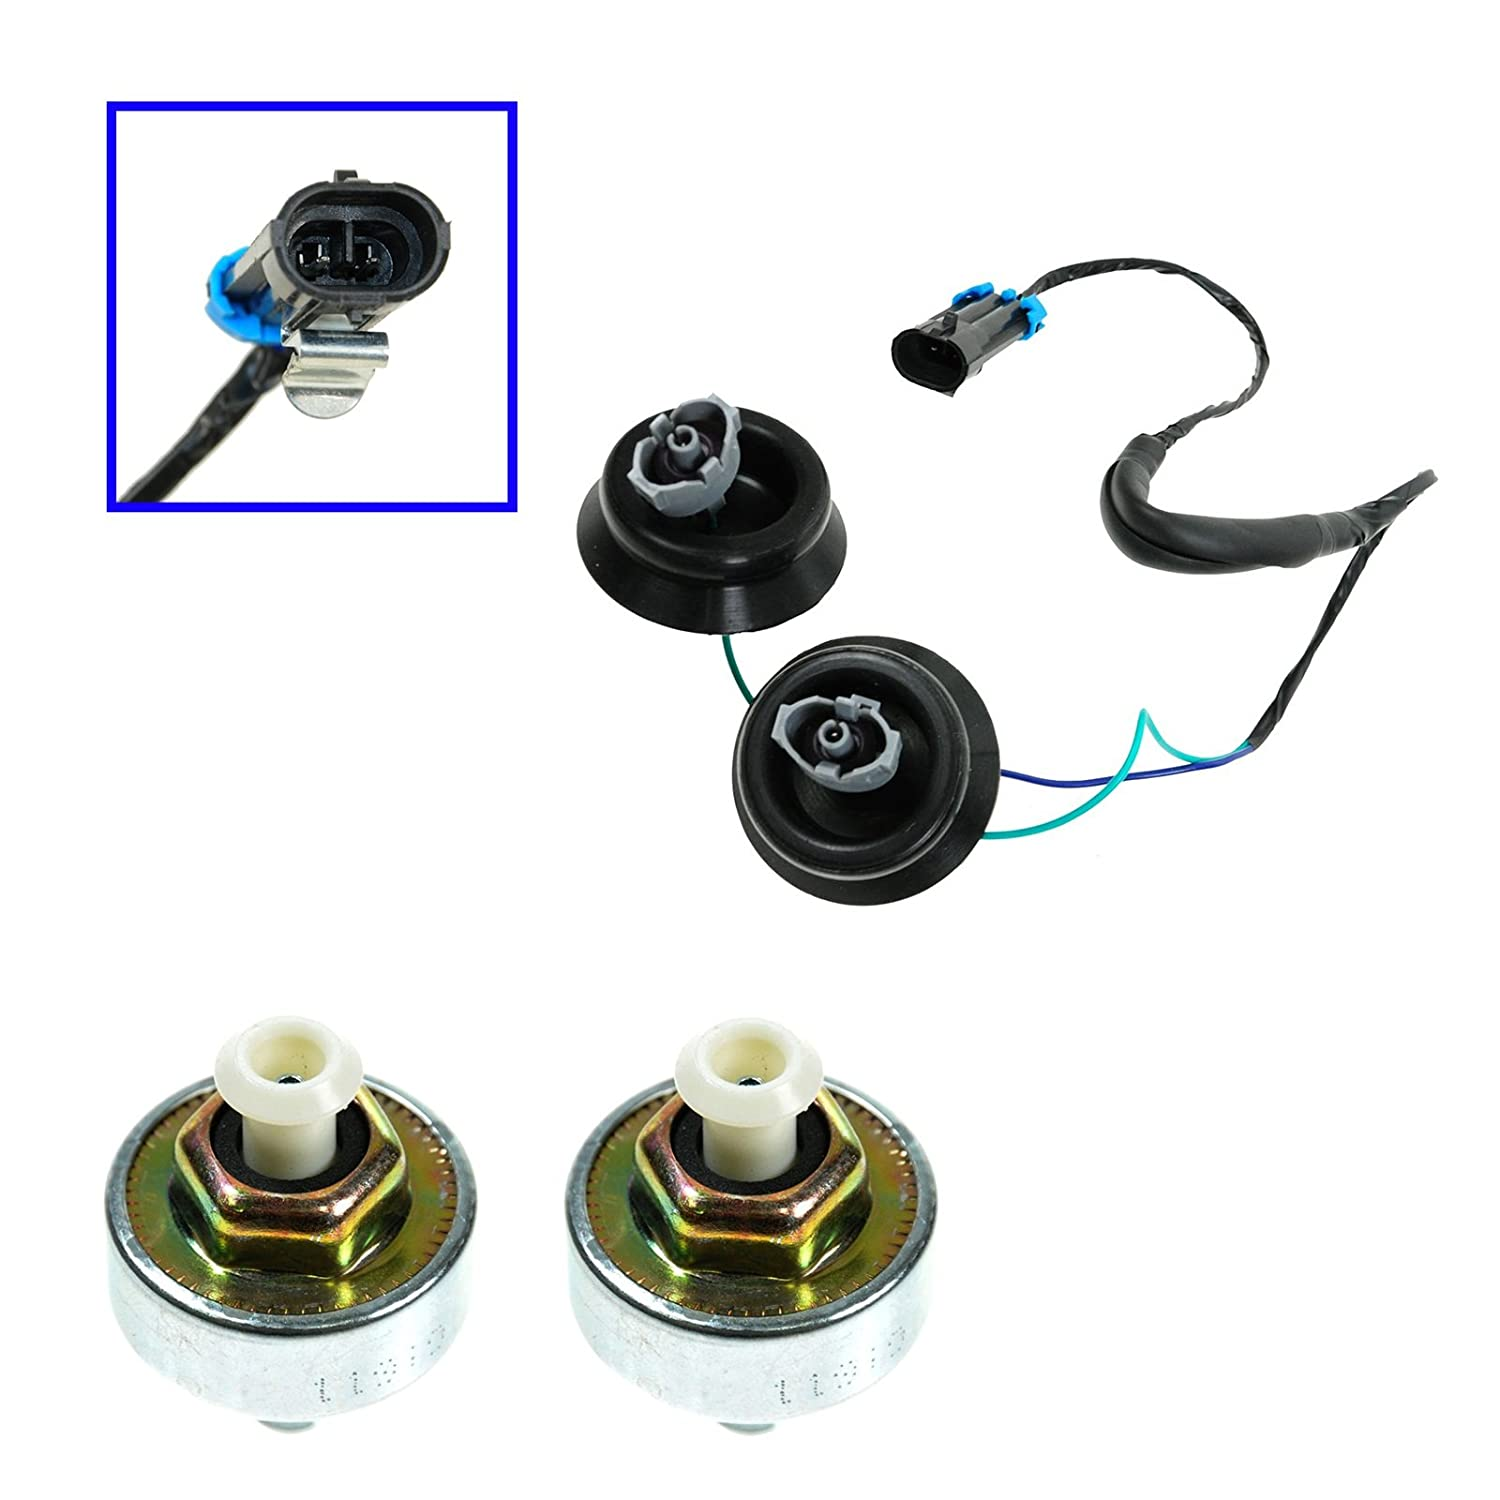 Knock Sensor With Harness Pair Kit Set For Chevy Gmc S10 Tbi 2 5 Wire Diagram Silverado Sierra Cadillac Automotive